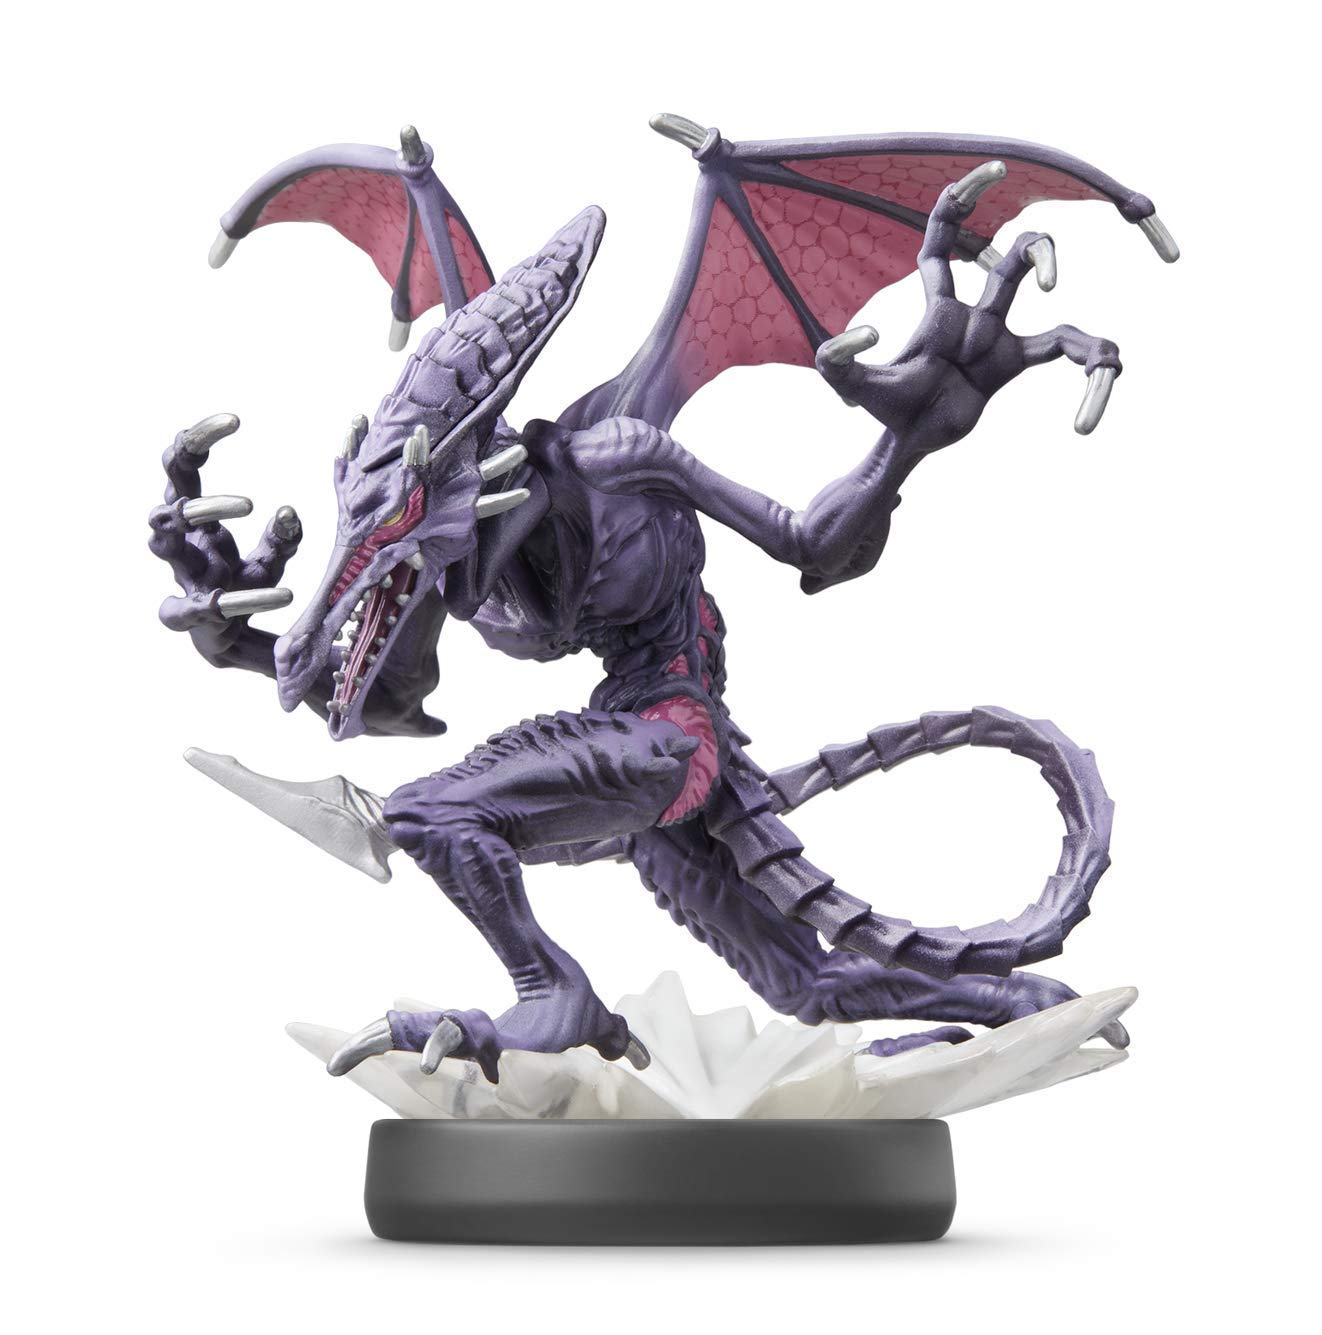 Super Smash Bros. Collection - Ridley amiibo - No 65